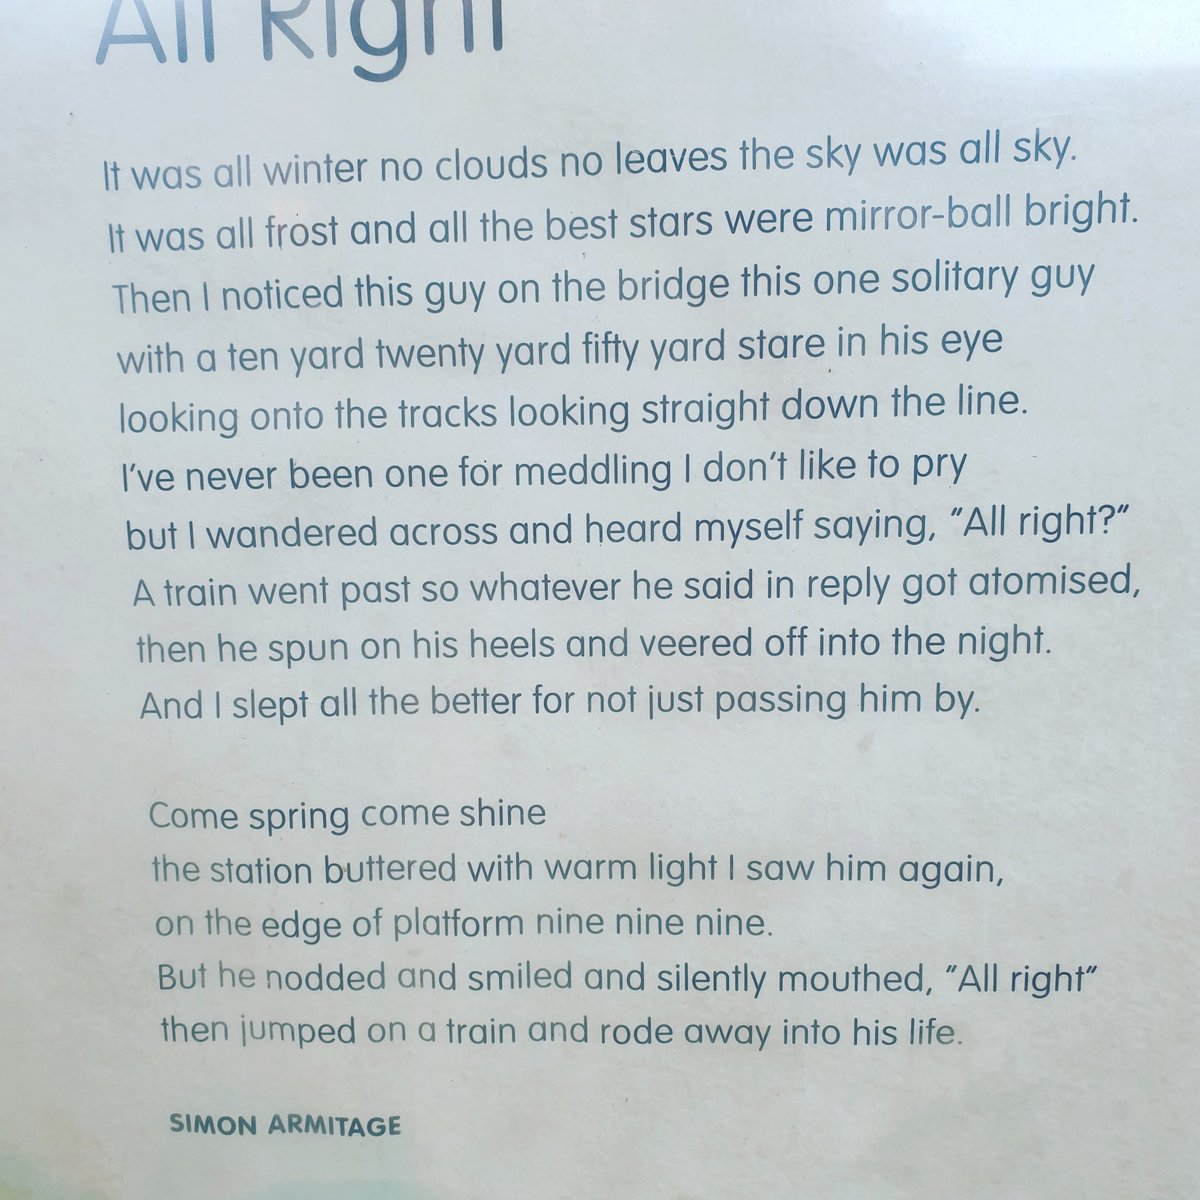 A beautiful poem about noticing distress and saving a life.  Our small acts of 'noticing' and kindness may save lives everyday.  #SuicidePrevention